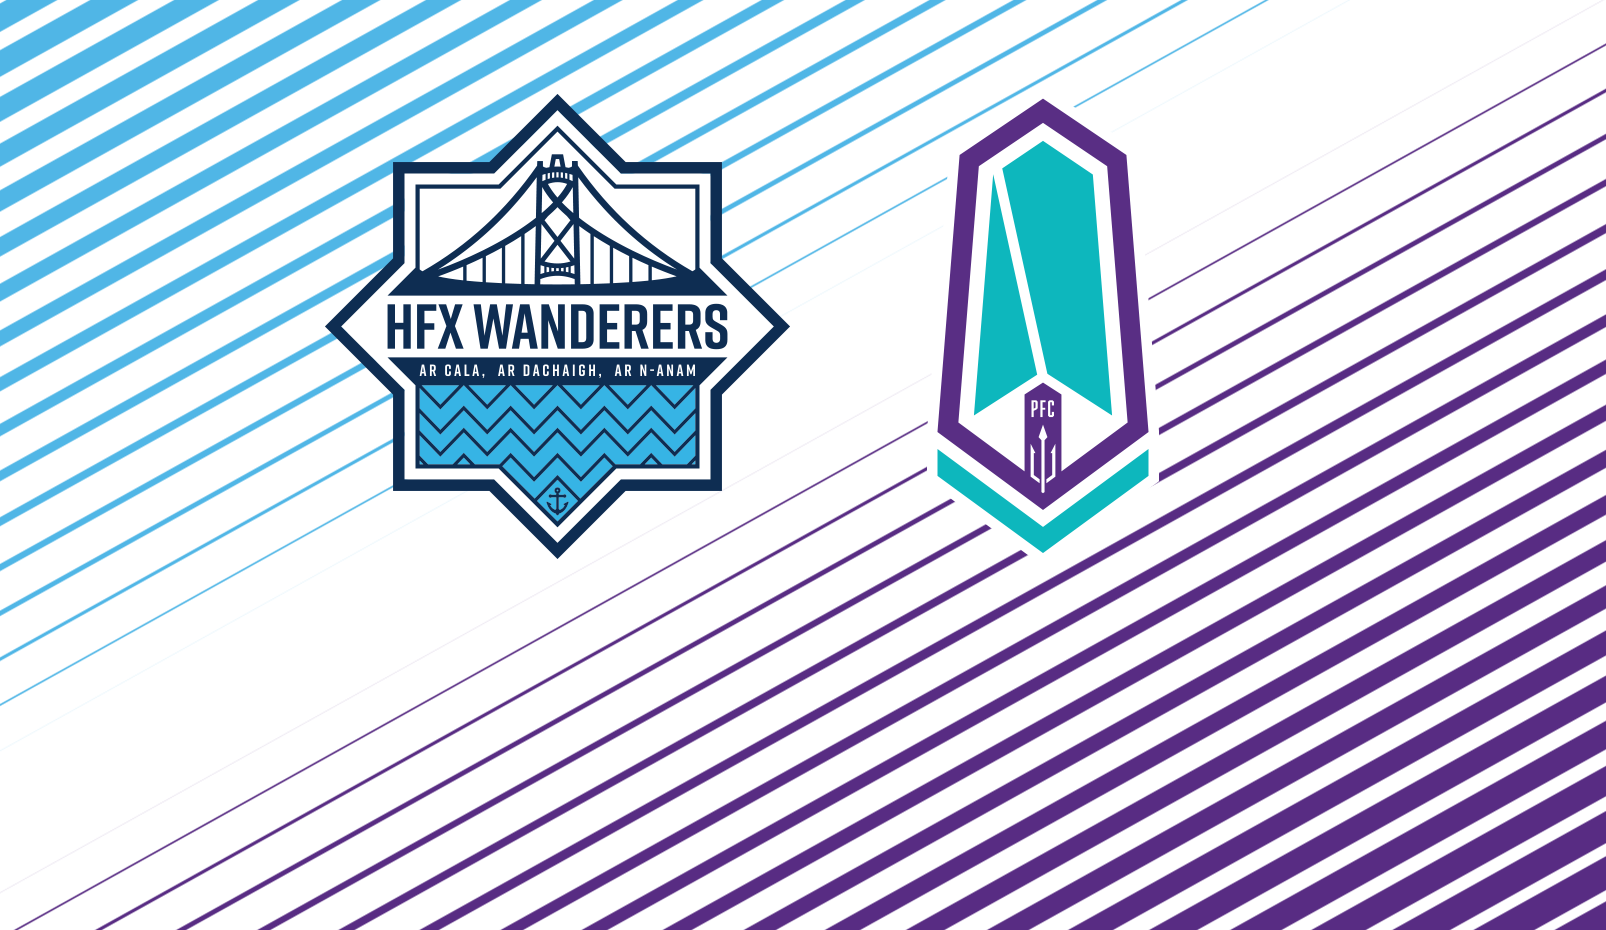 PREVIEW: HFX Wanderers FC vs. Pacific FC - Match #89